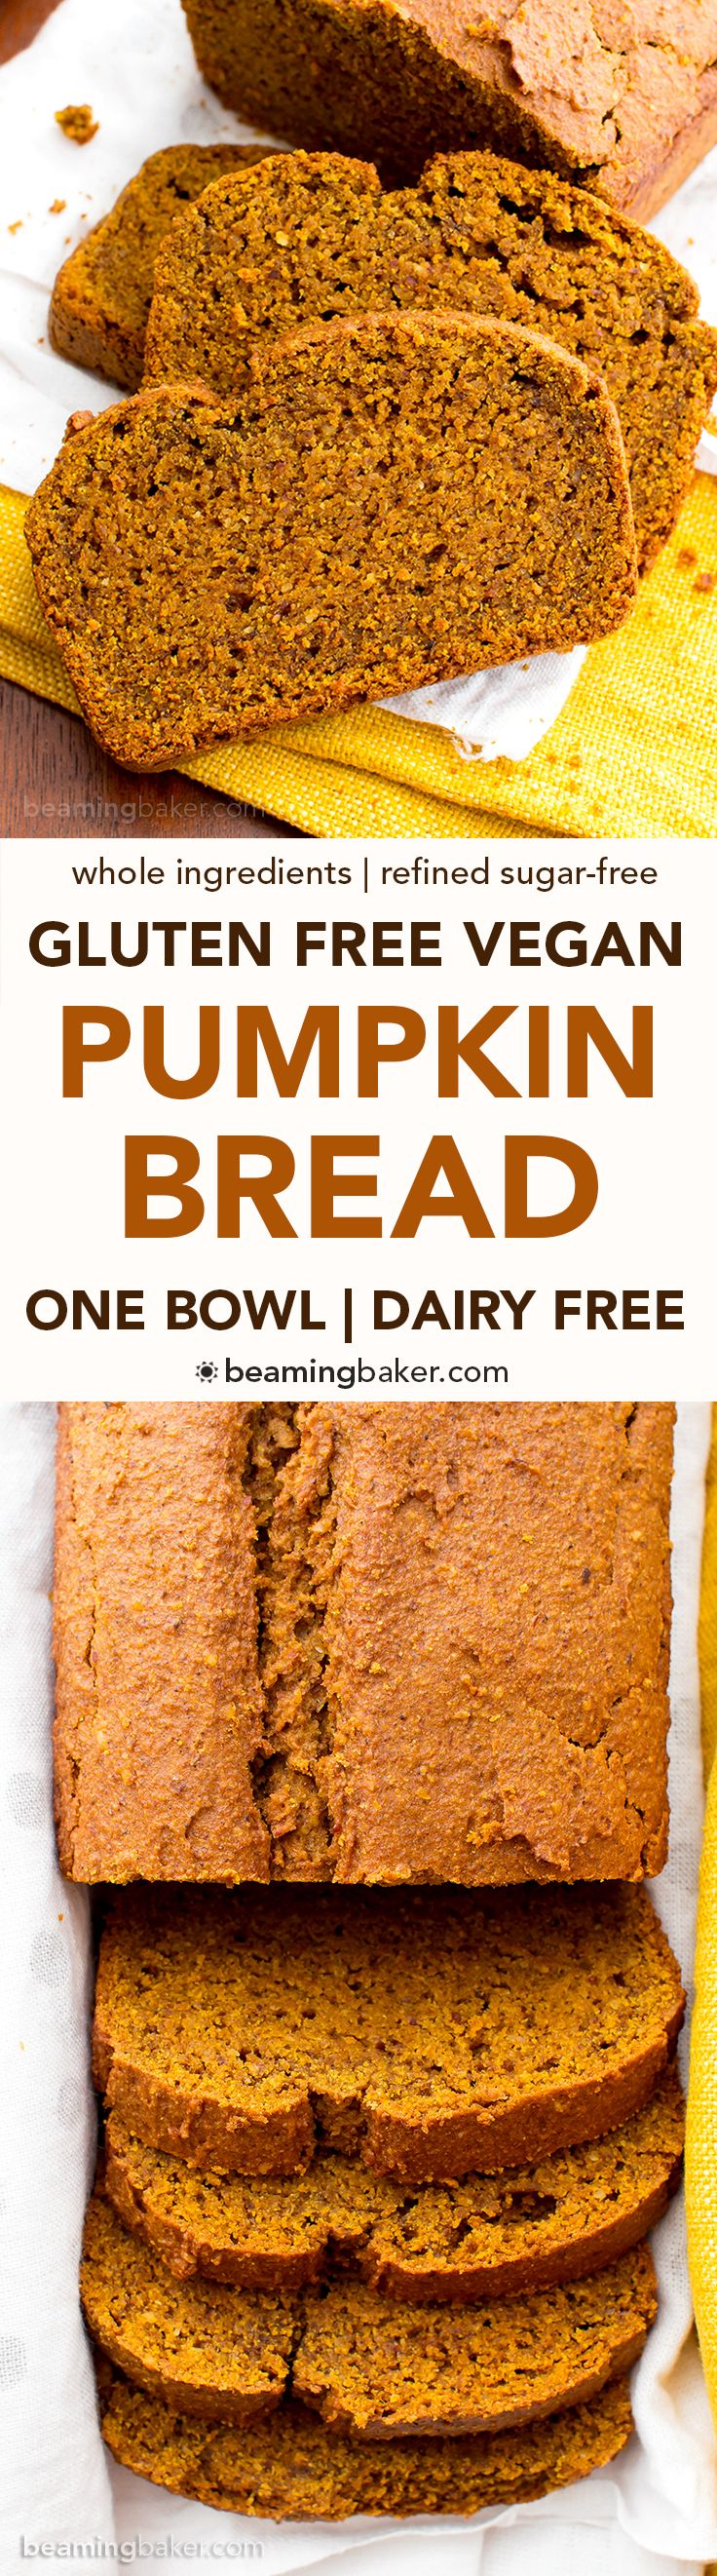 One Bowl Gluten Free Vegan Pumpkin Bread (V, GF, DF): an easy, one bowl recipe…